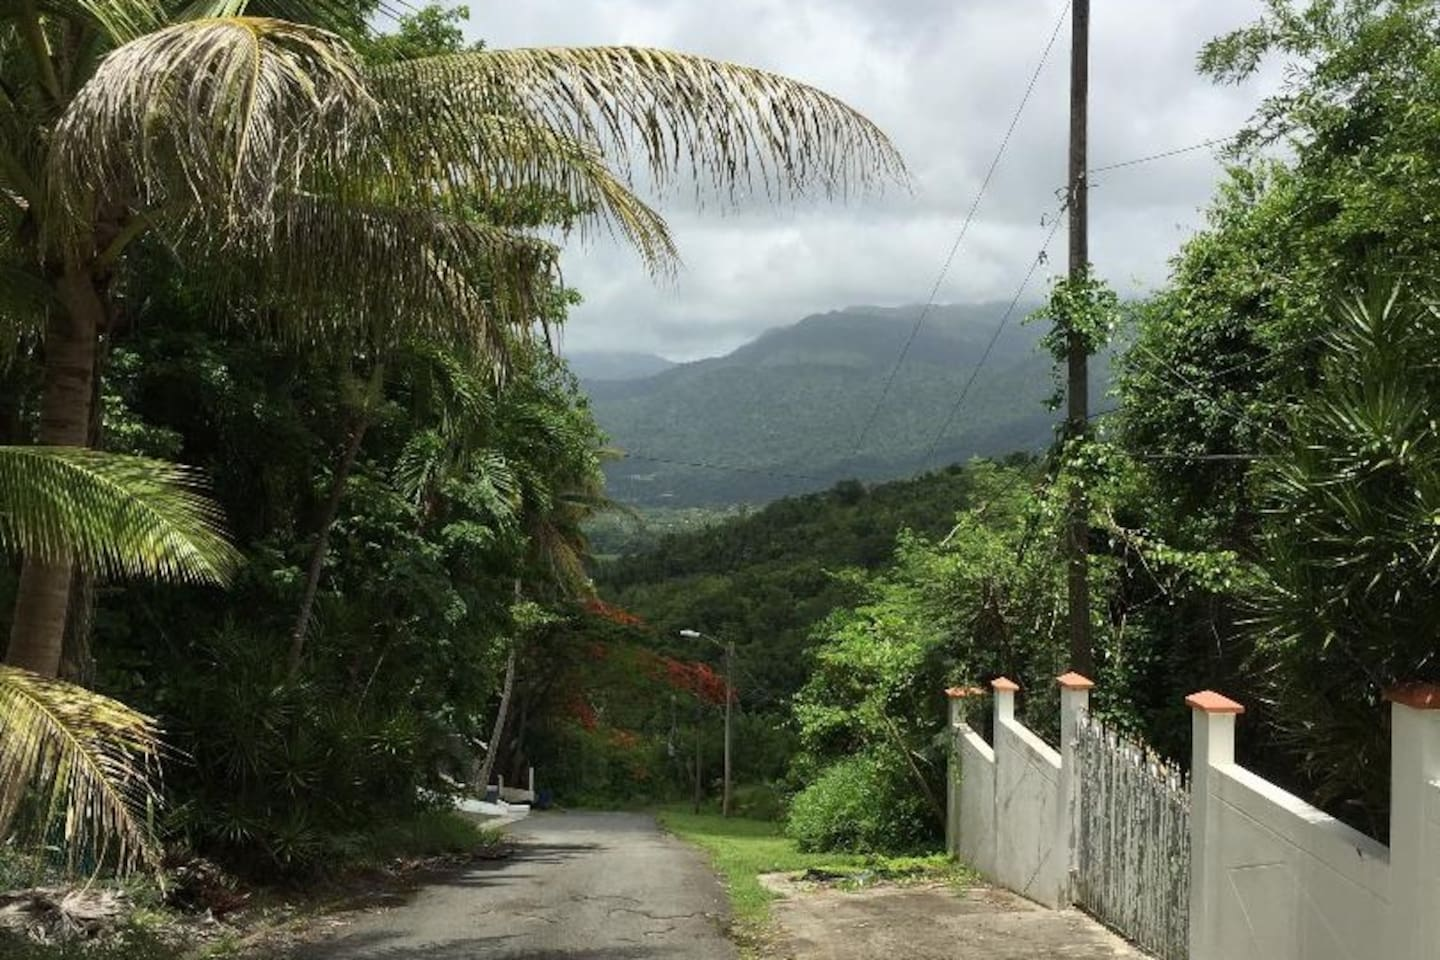 Scenic view of El Yunque National Rain Forest from the front driveway of your vacation home.